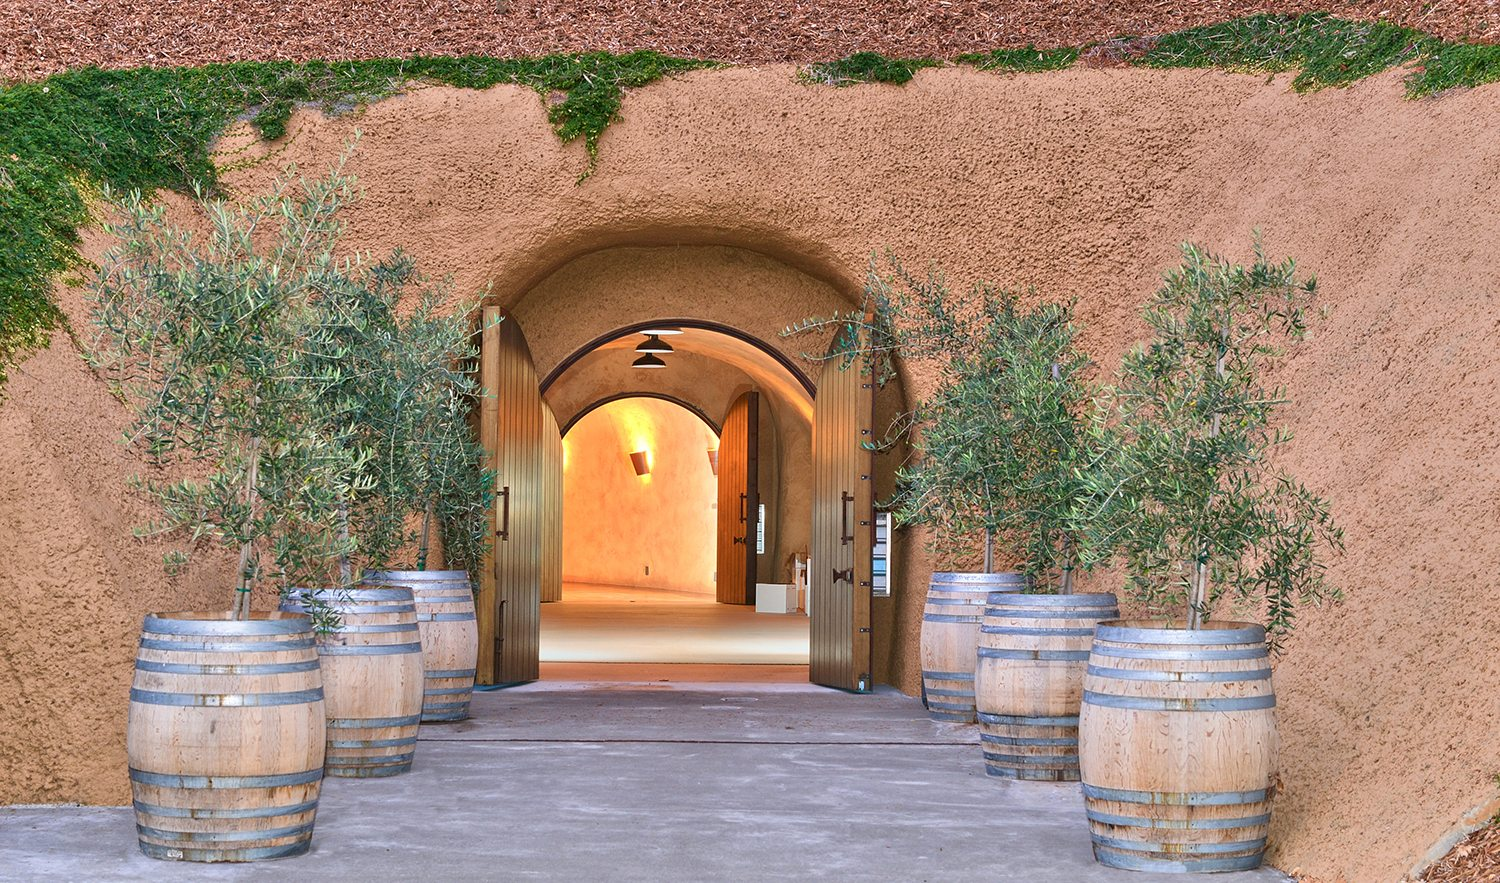 Interiors Envy: A Magical Wine Cave in Healdsburg